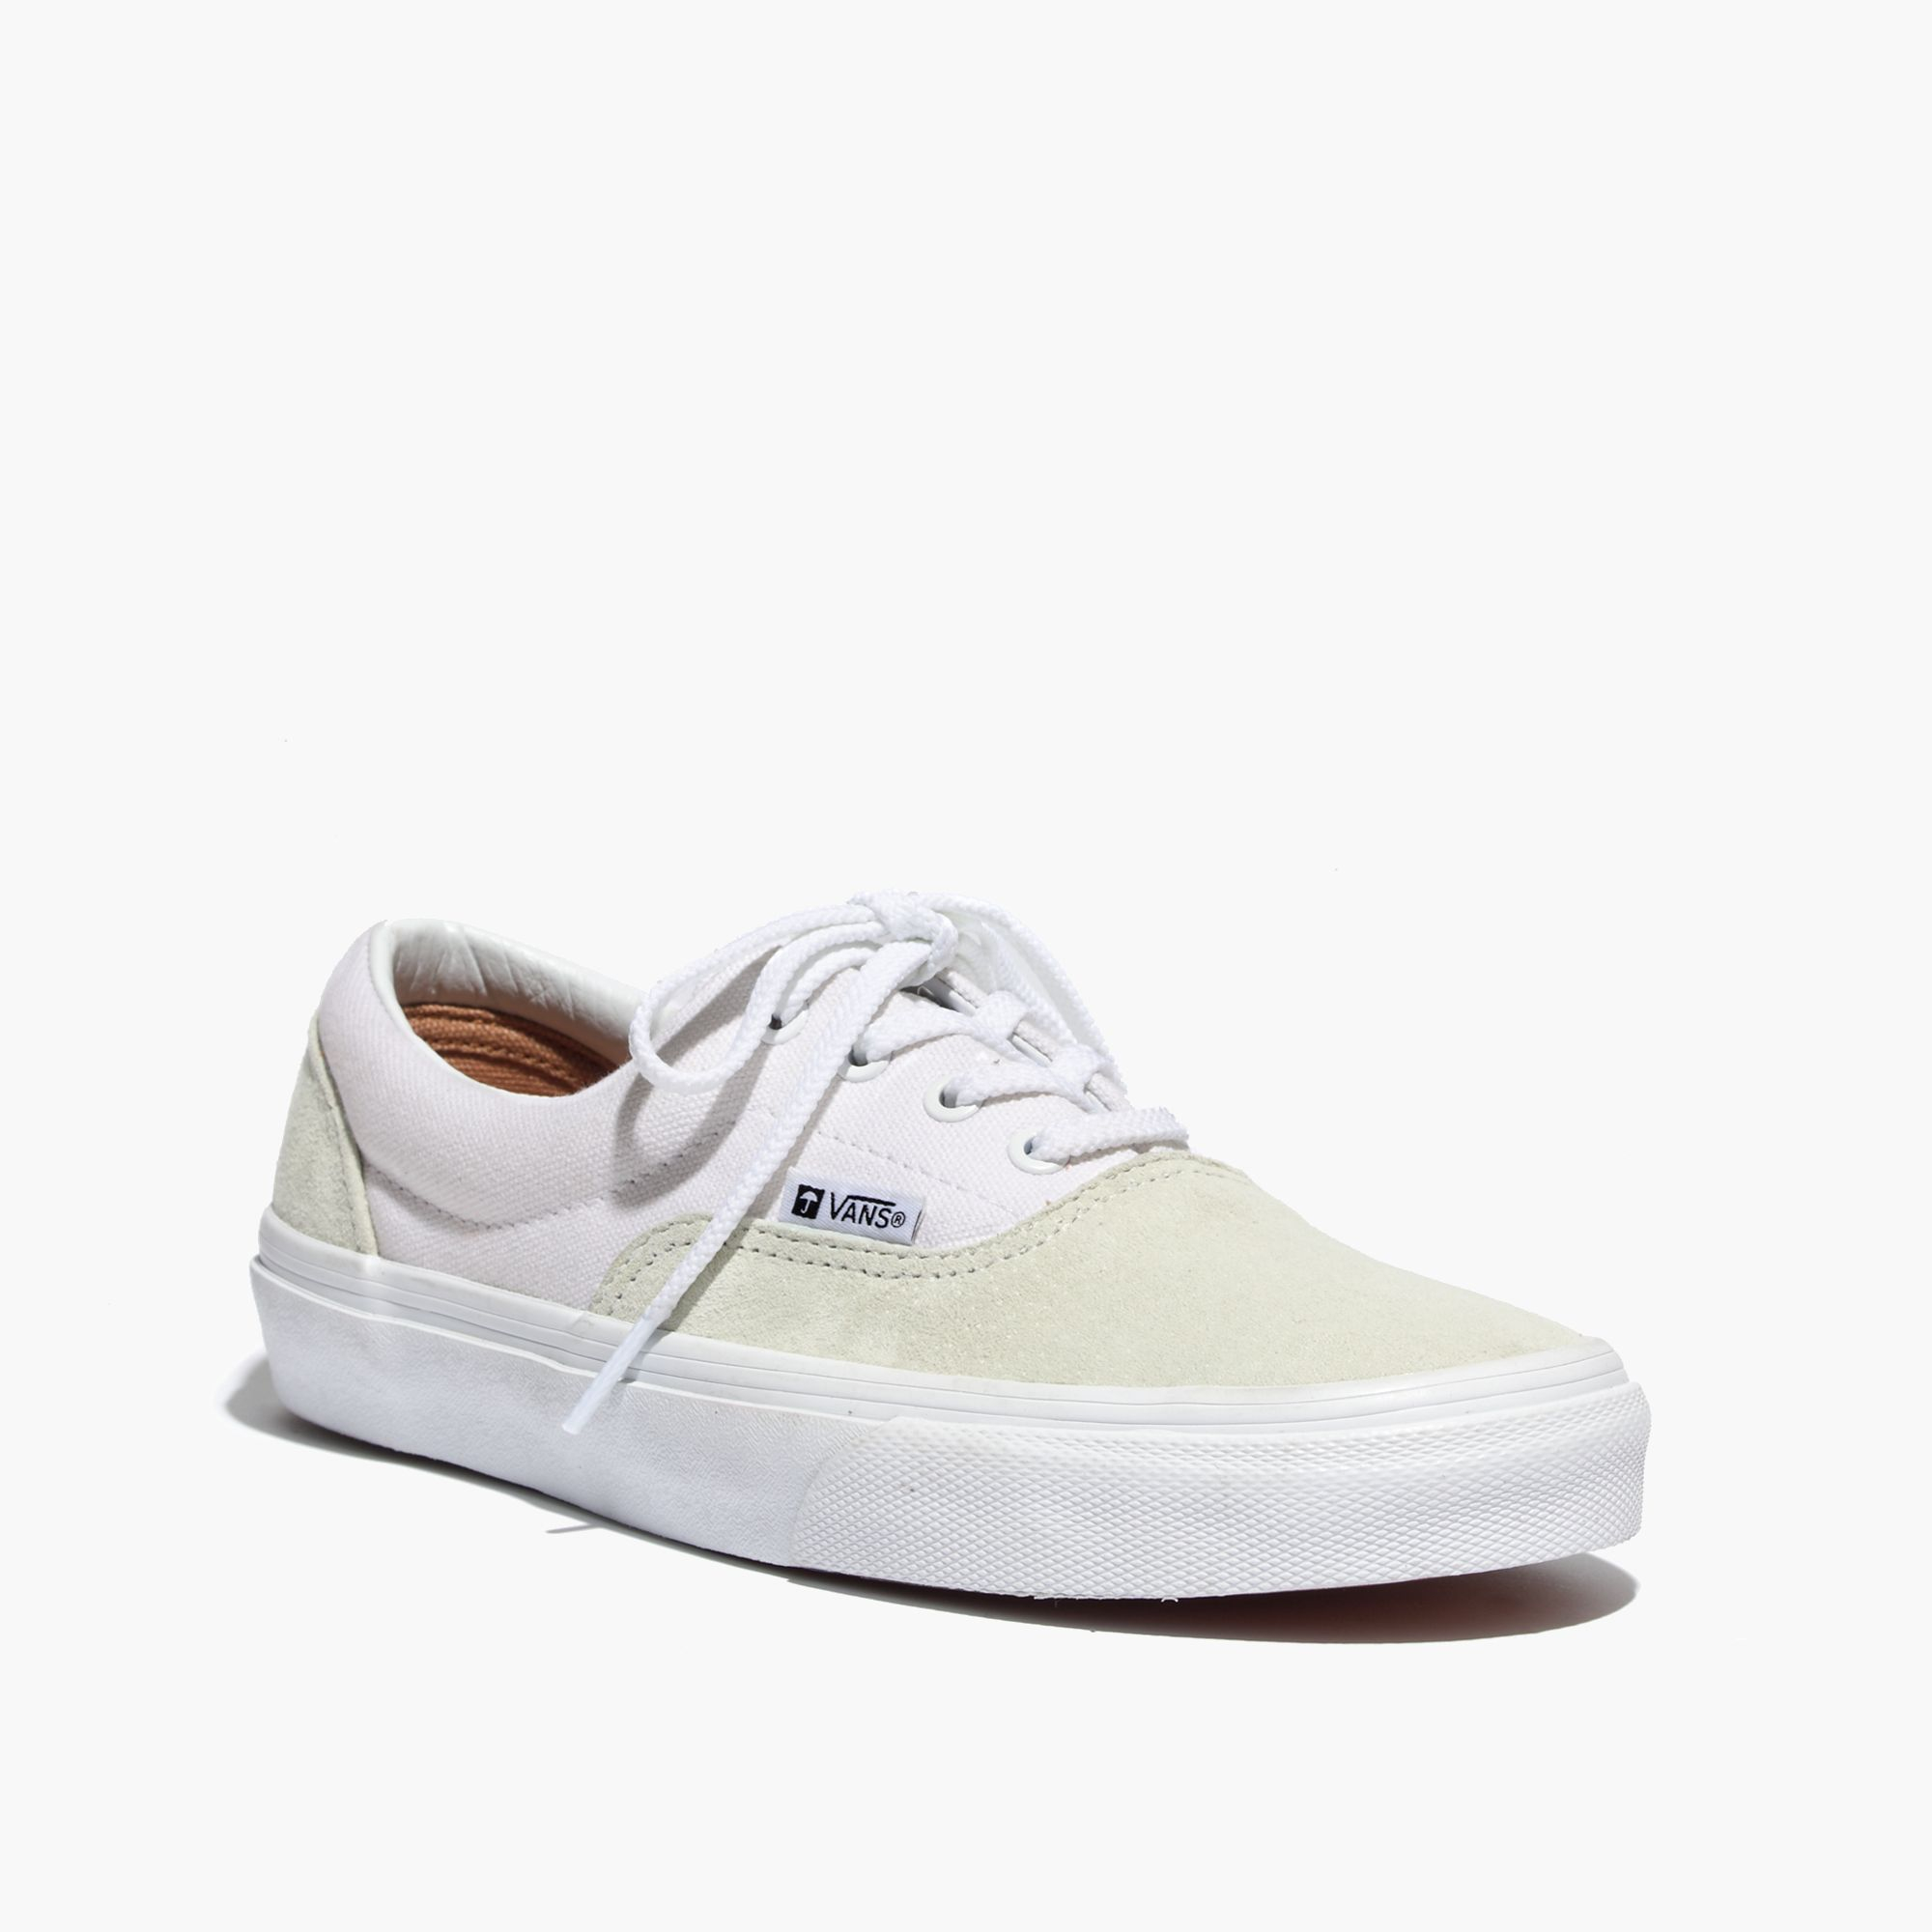 Lyst Madewell Vans Era Ca Lace Up Sneakers In Suede And Canvas In